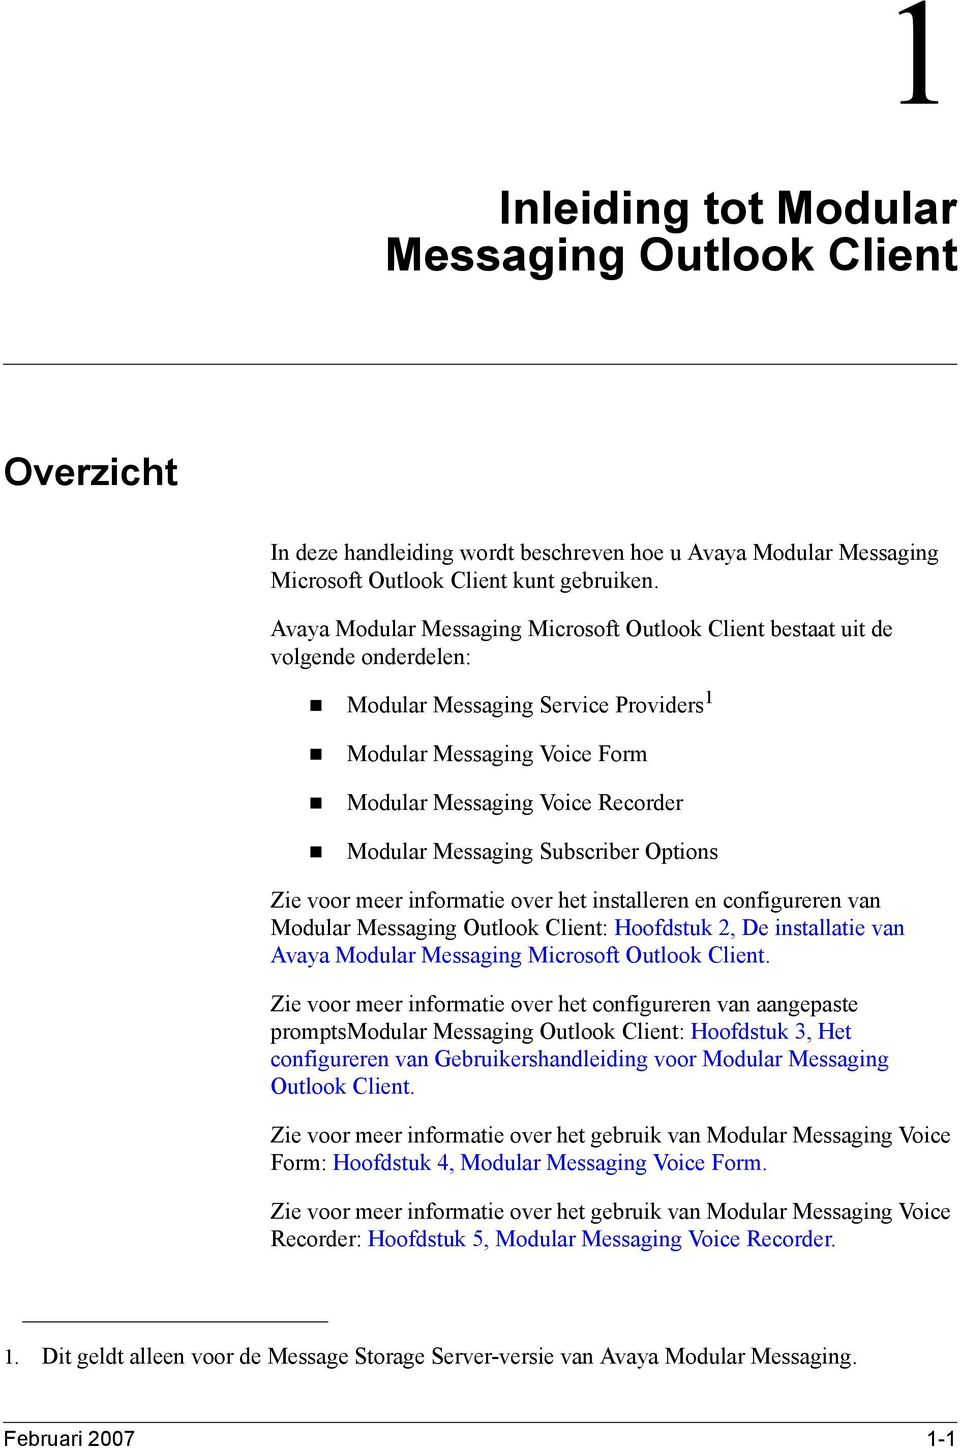 Modular Messaging Subscriber Options Zie voor meer informatie over het installeren en configureren van Modular Messaging Outlook Client: Hoofdstuk 2, De installatie van Avaya Modular Messaging